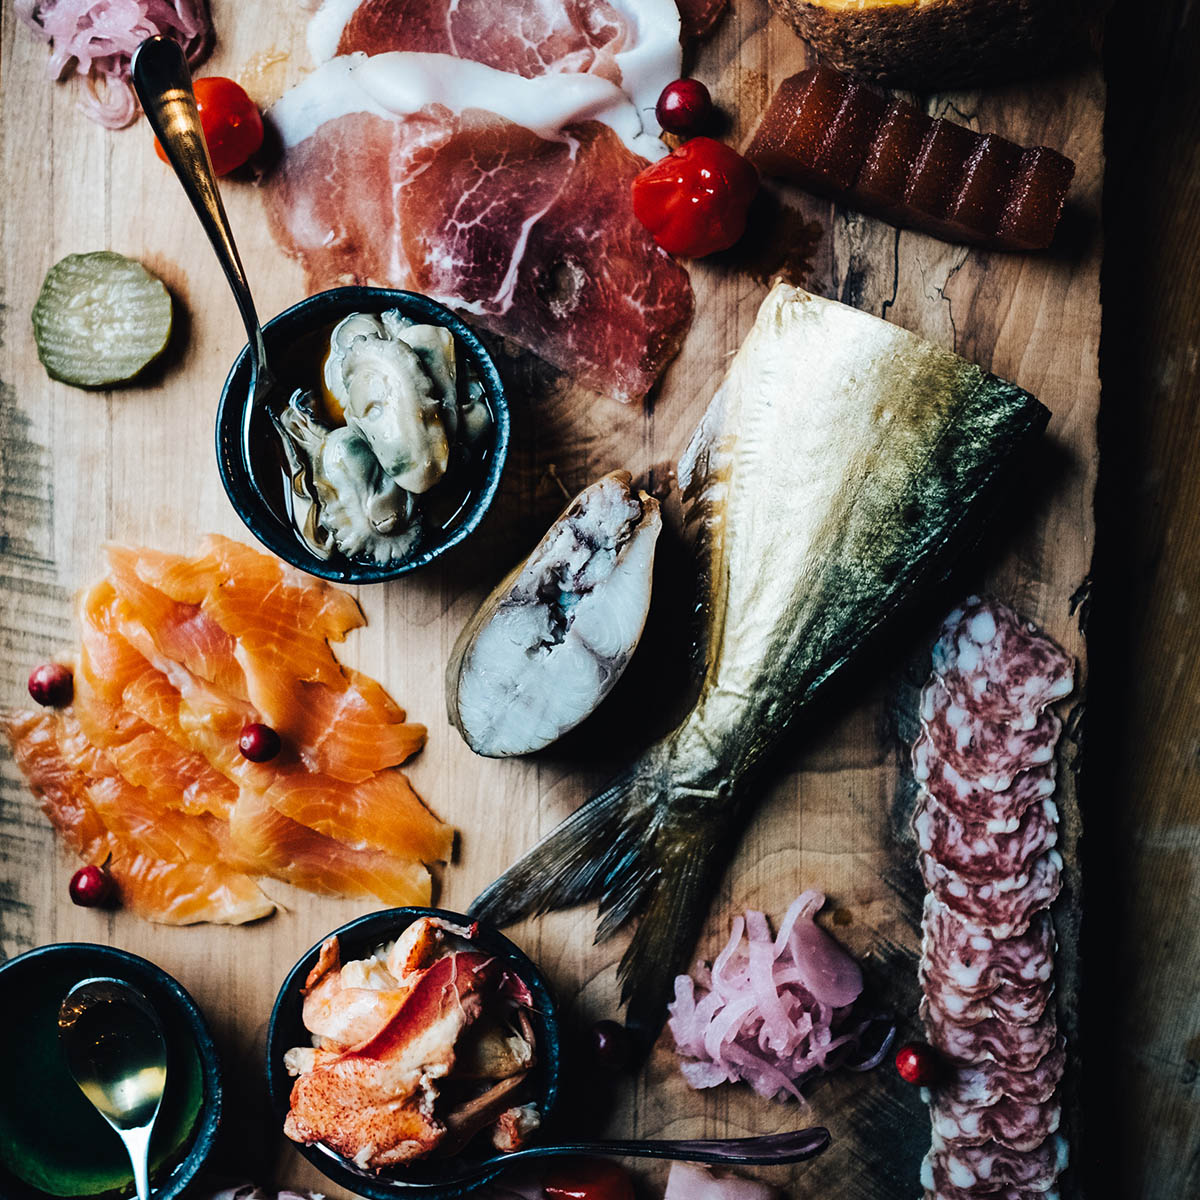 House-made, imported and domestic cured meats are accompanied by mustards, compotes, pickles and nuts on a Big Tree Catering charcuterie board.